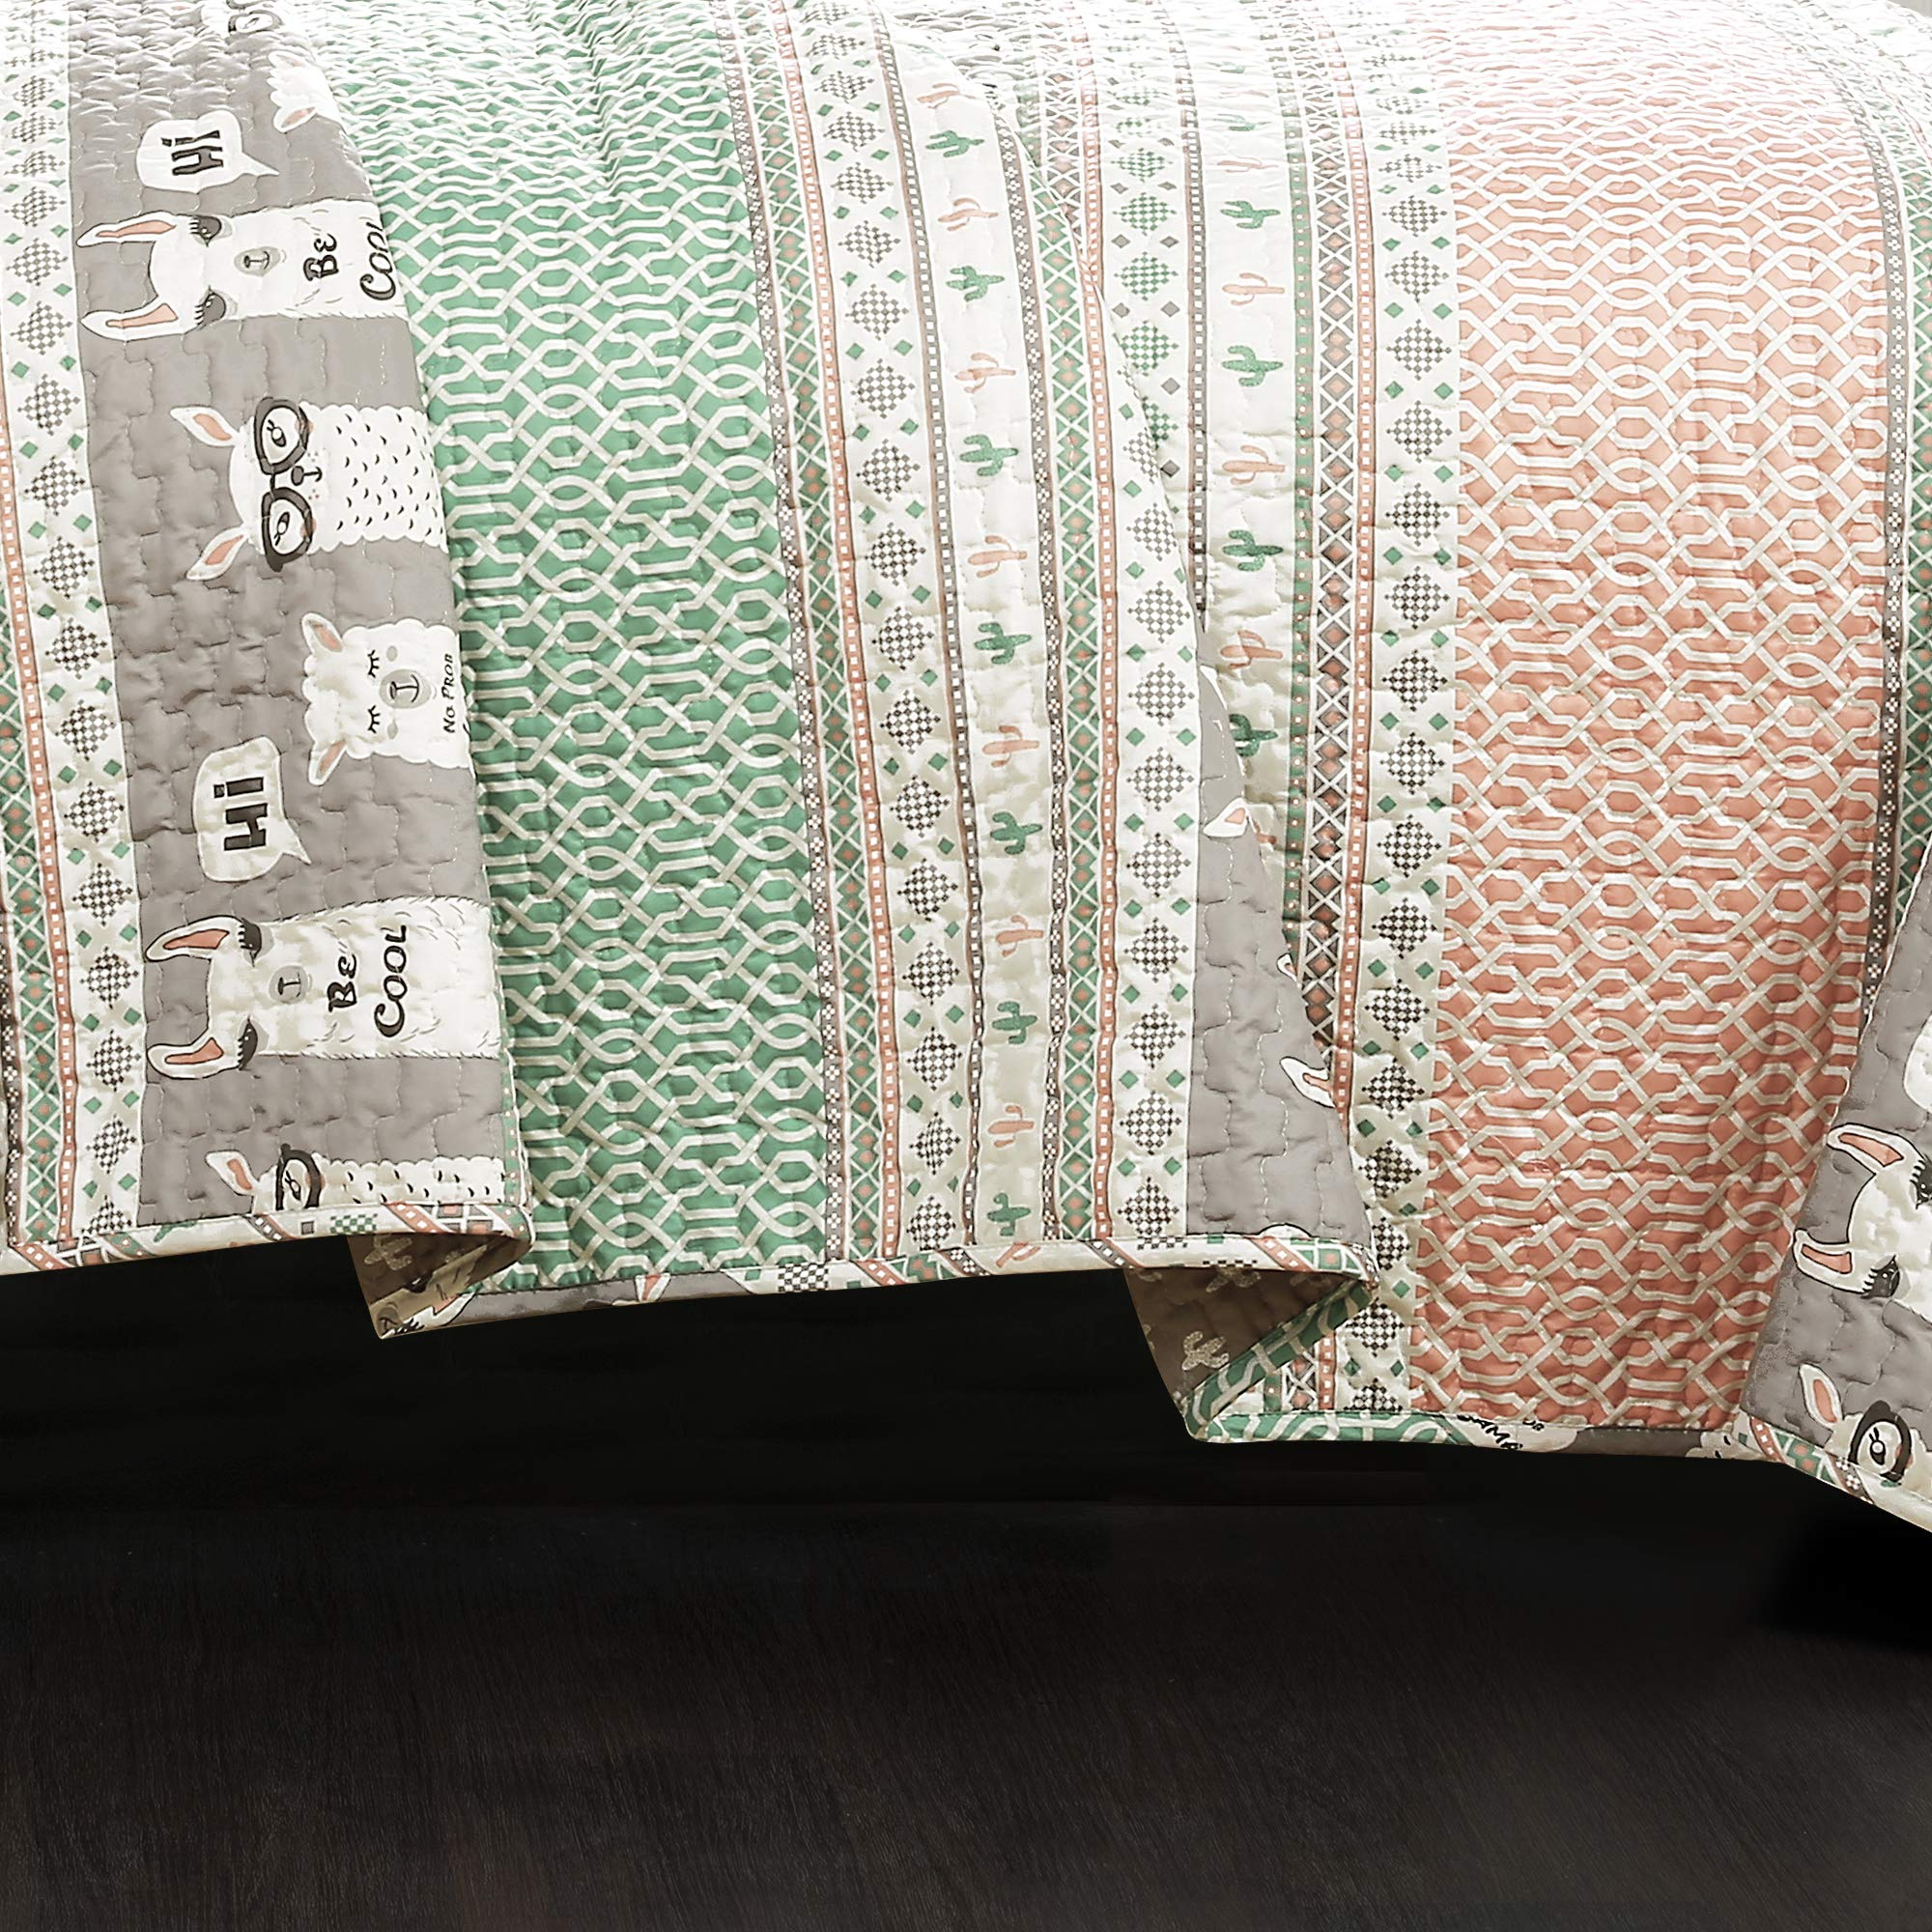 Lush Decor Llama Striped Quilt Reversible 5 Piece Kids Bedding Set Full Queen Turquoise & Pink by Lush Decor (Image #3)